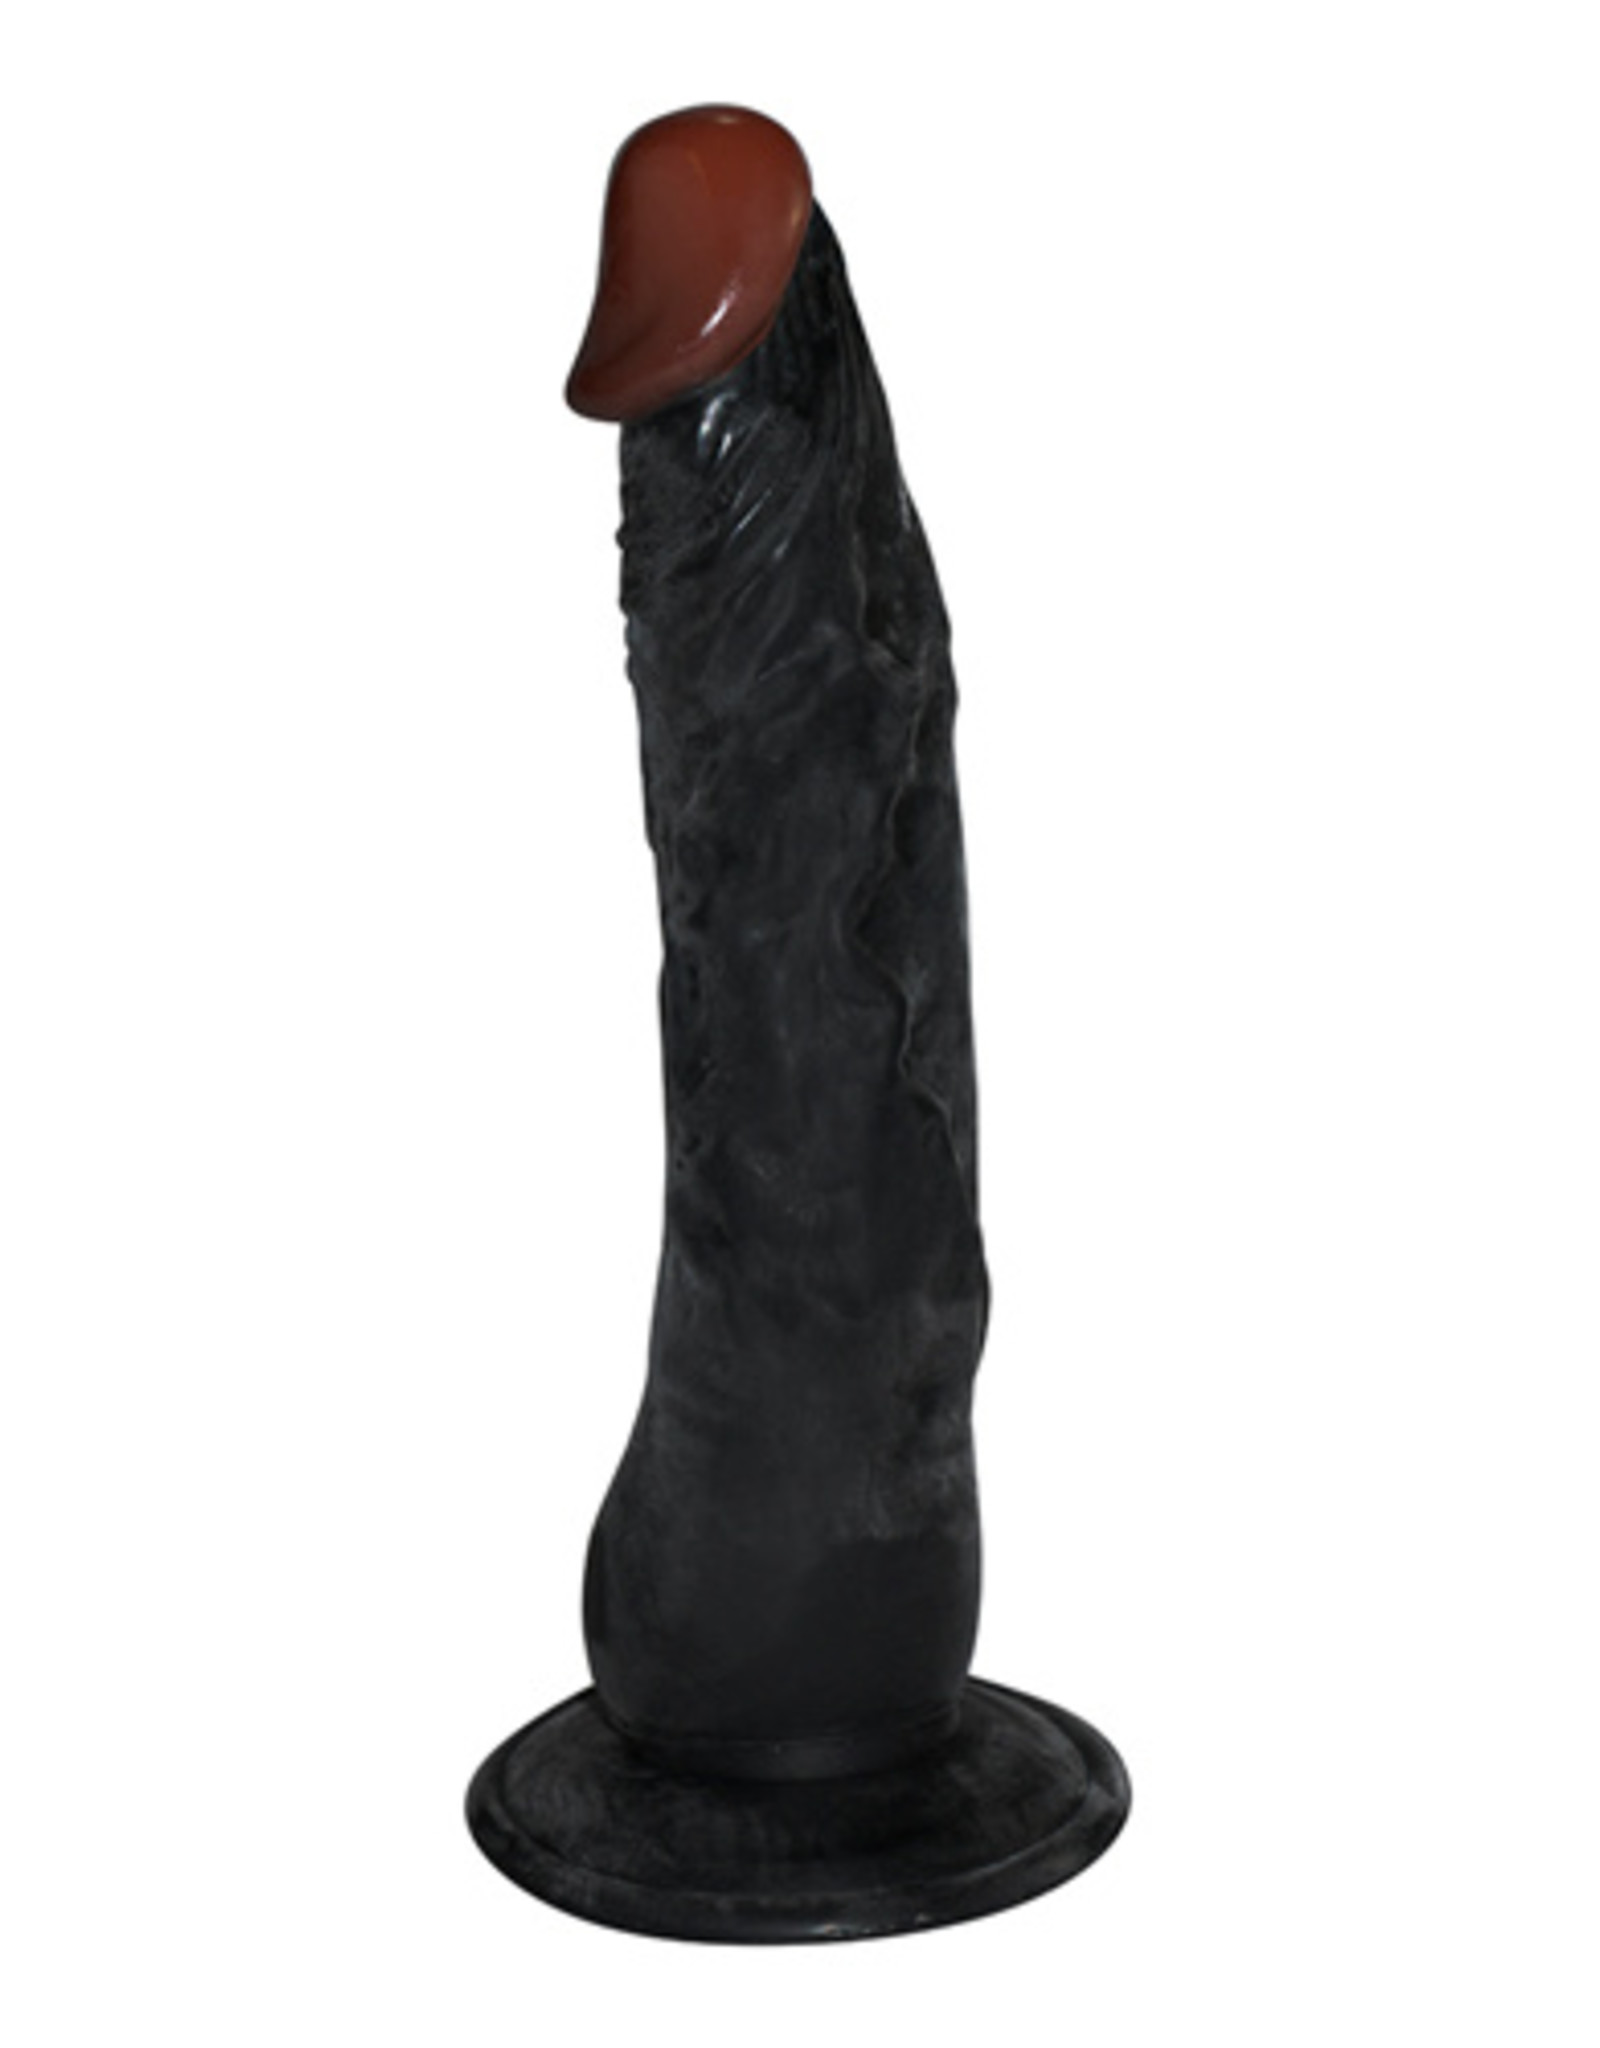 You2Toys African Lover Dildo